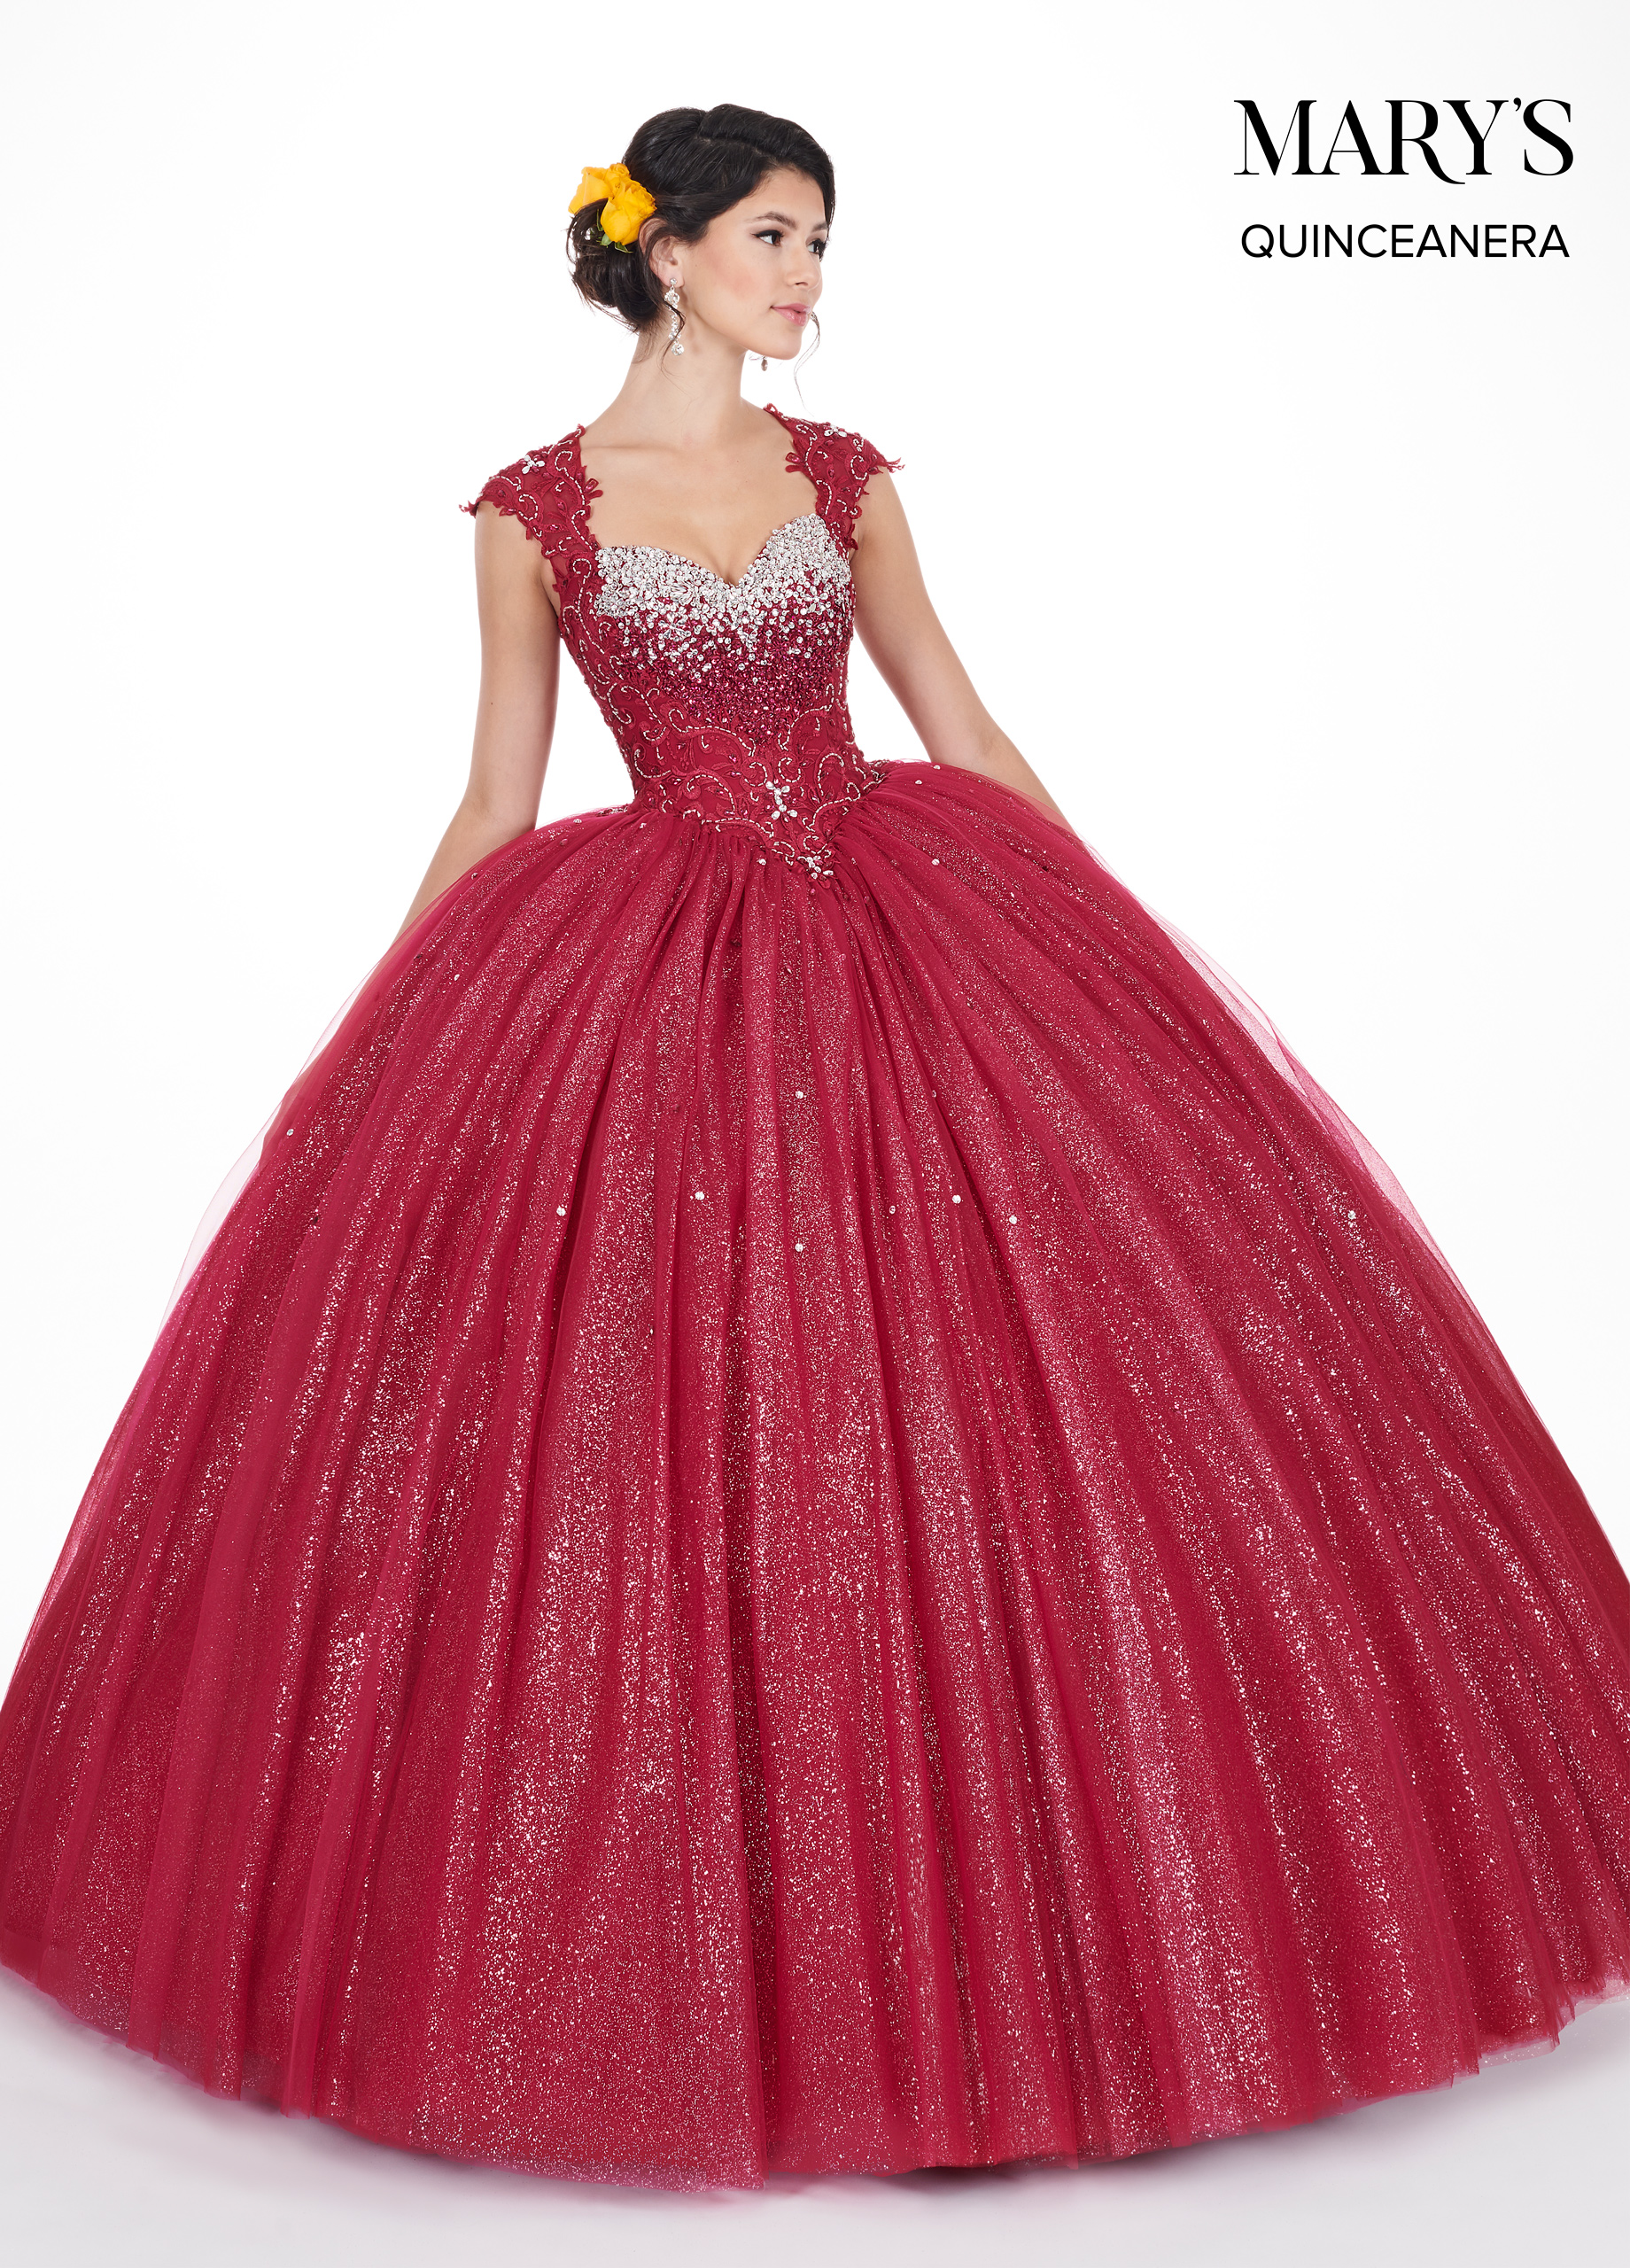 Marys Quinceanera Dresses | Mary's Quinceanera | Style - MQ1031